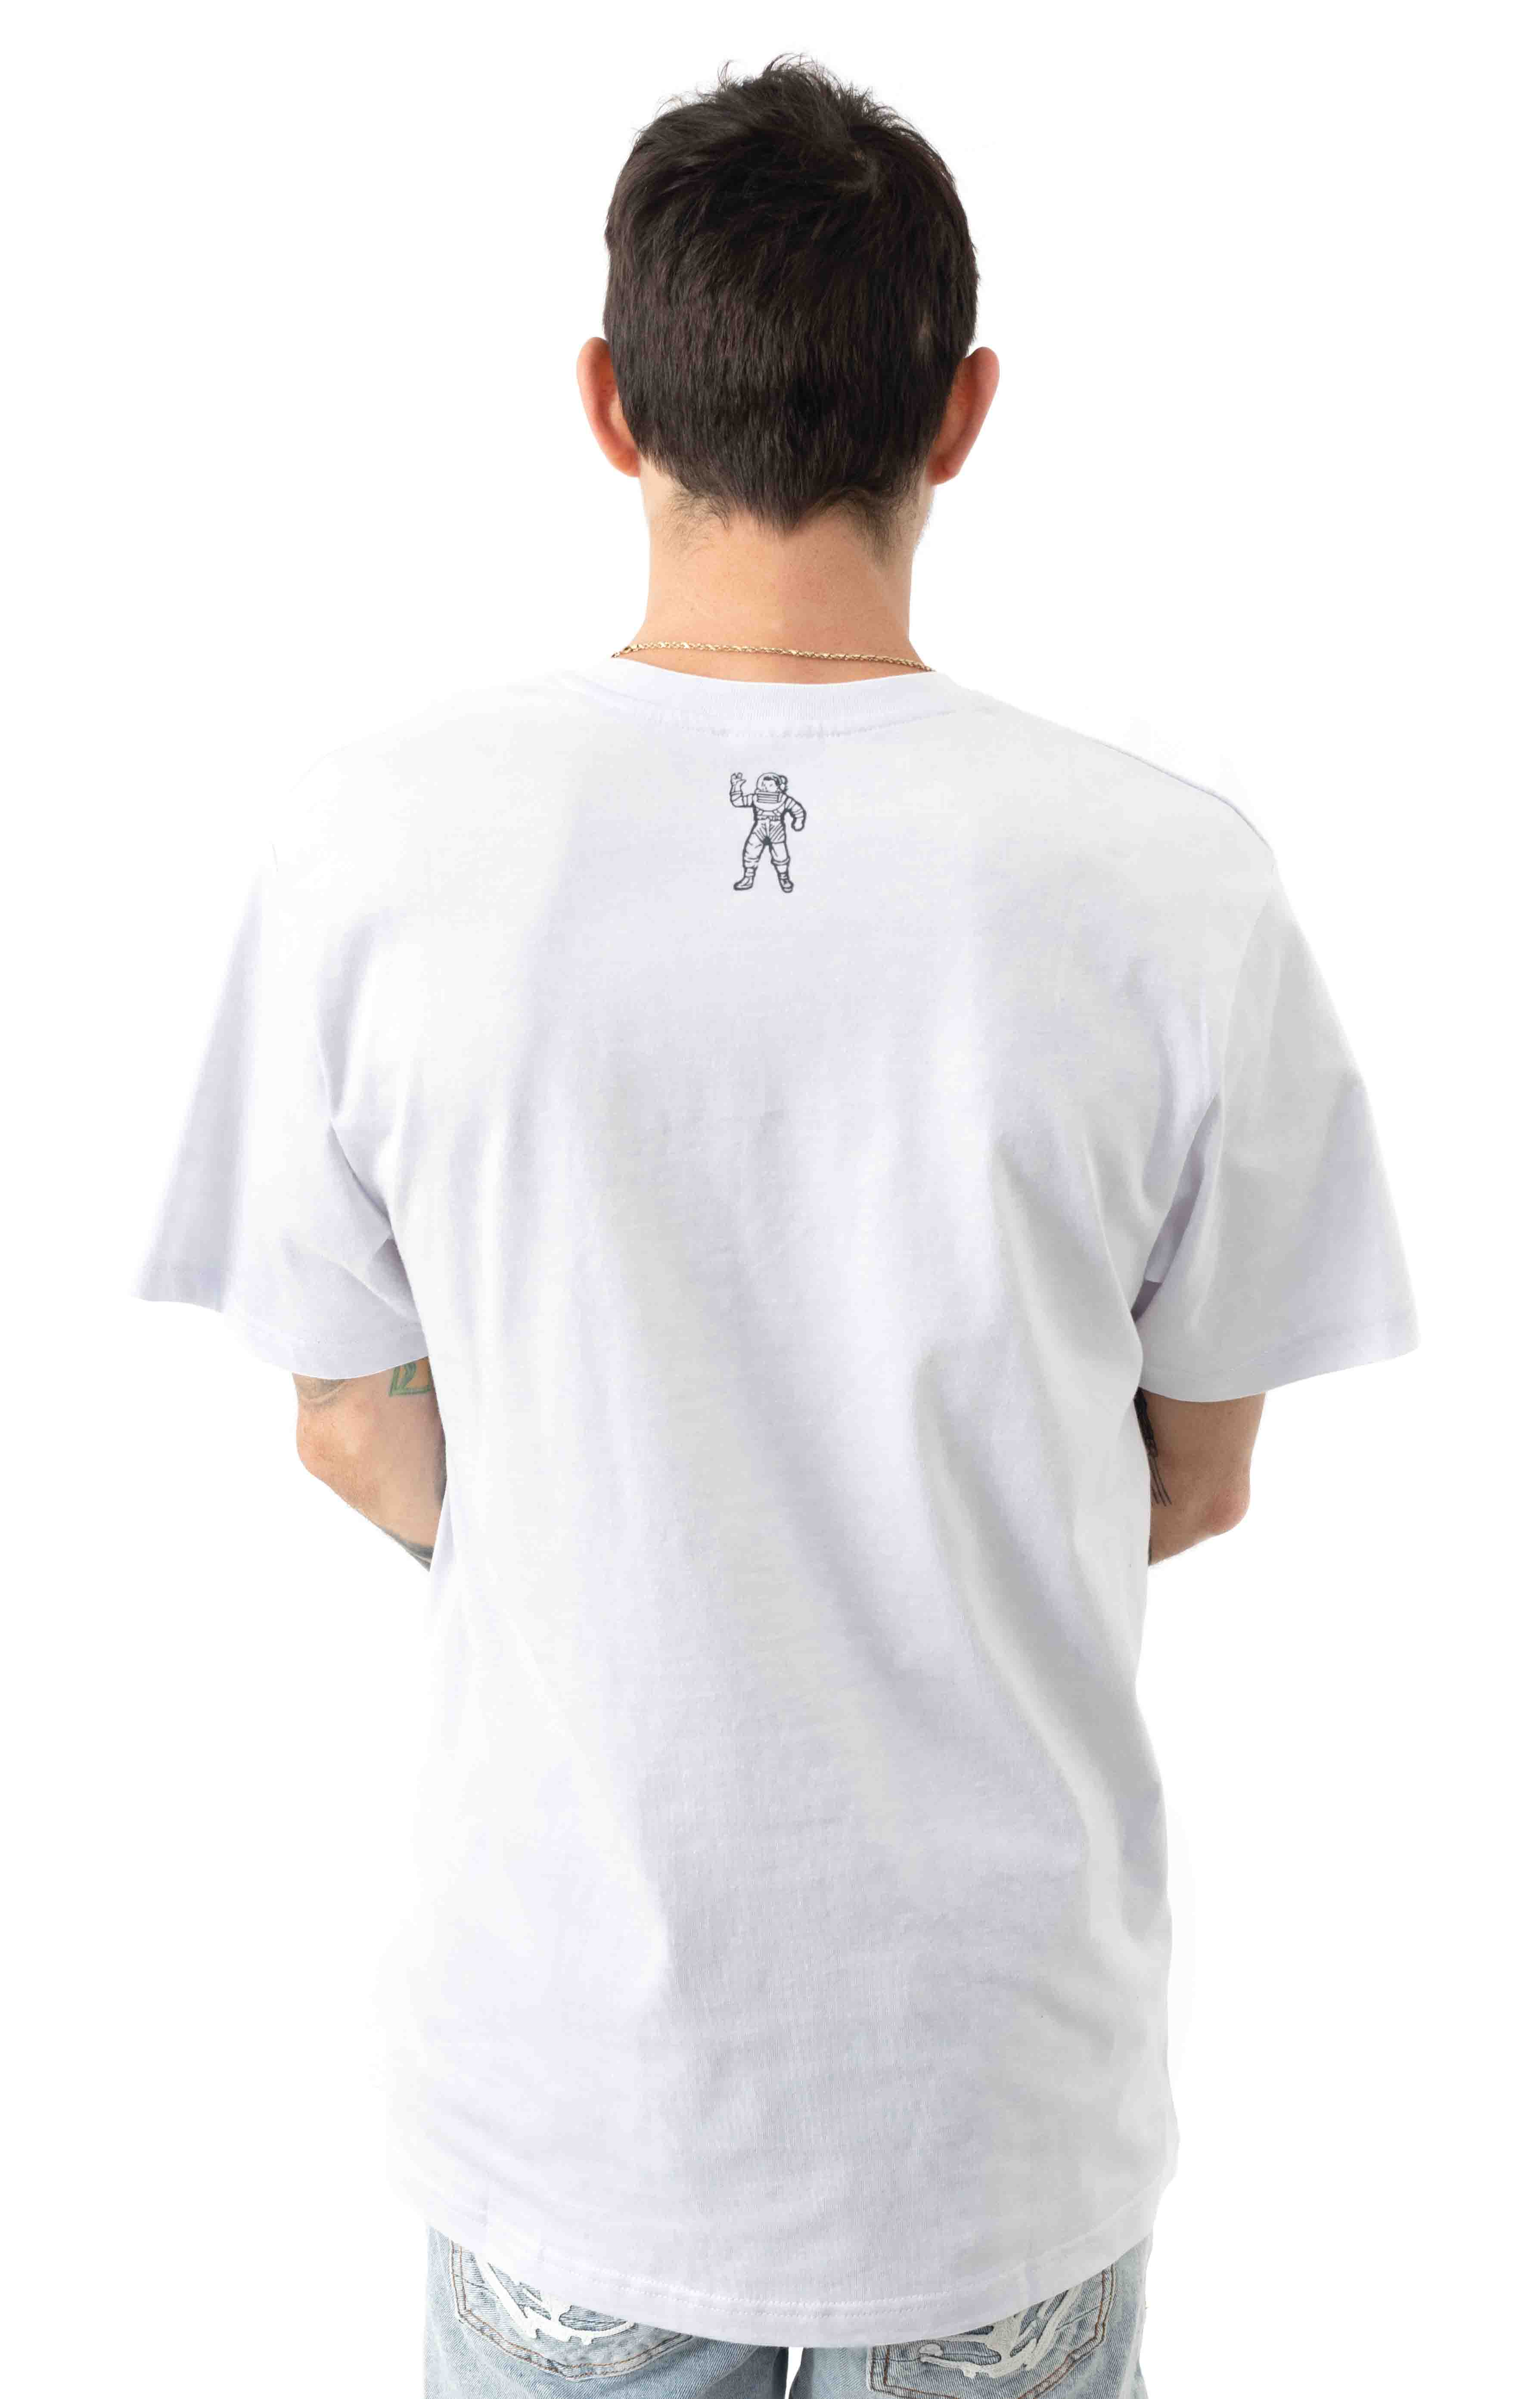 BB Communicate T-Shirt - White 3